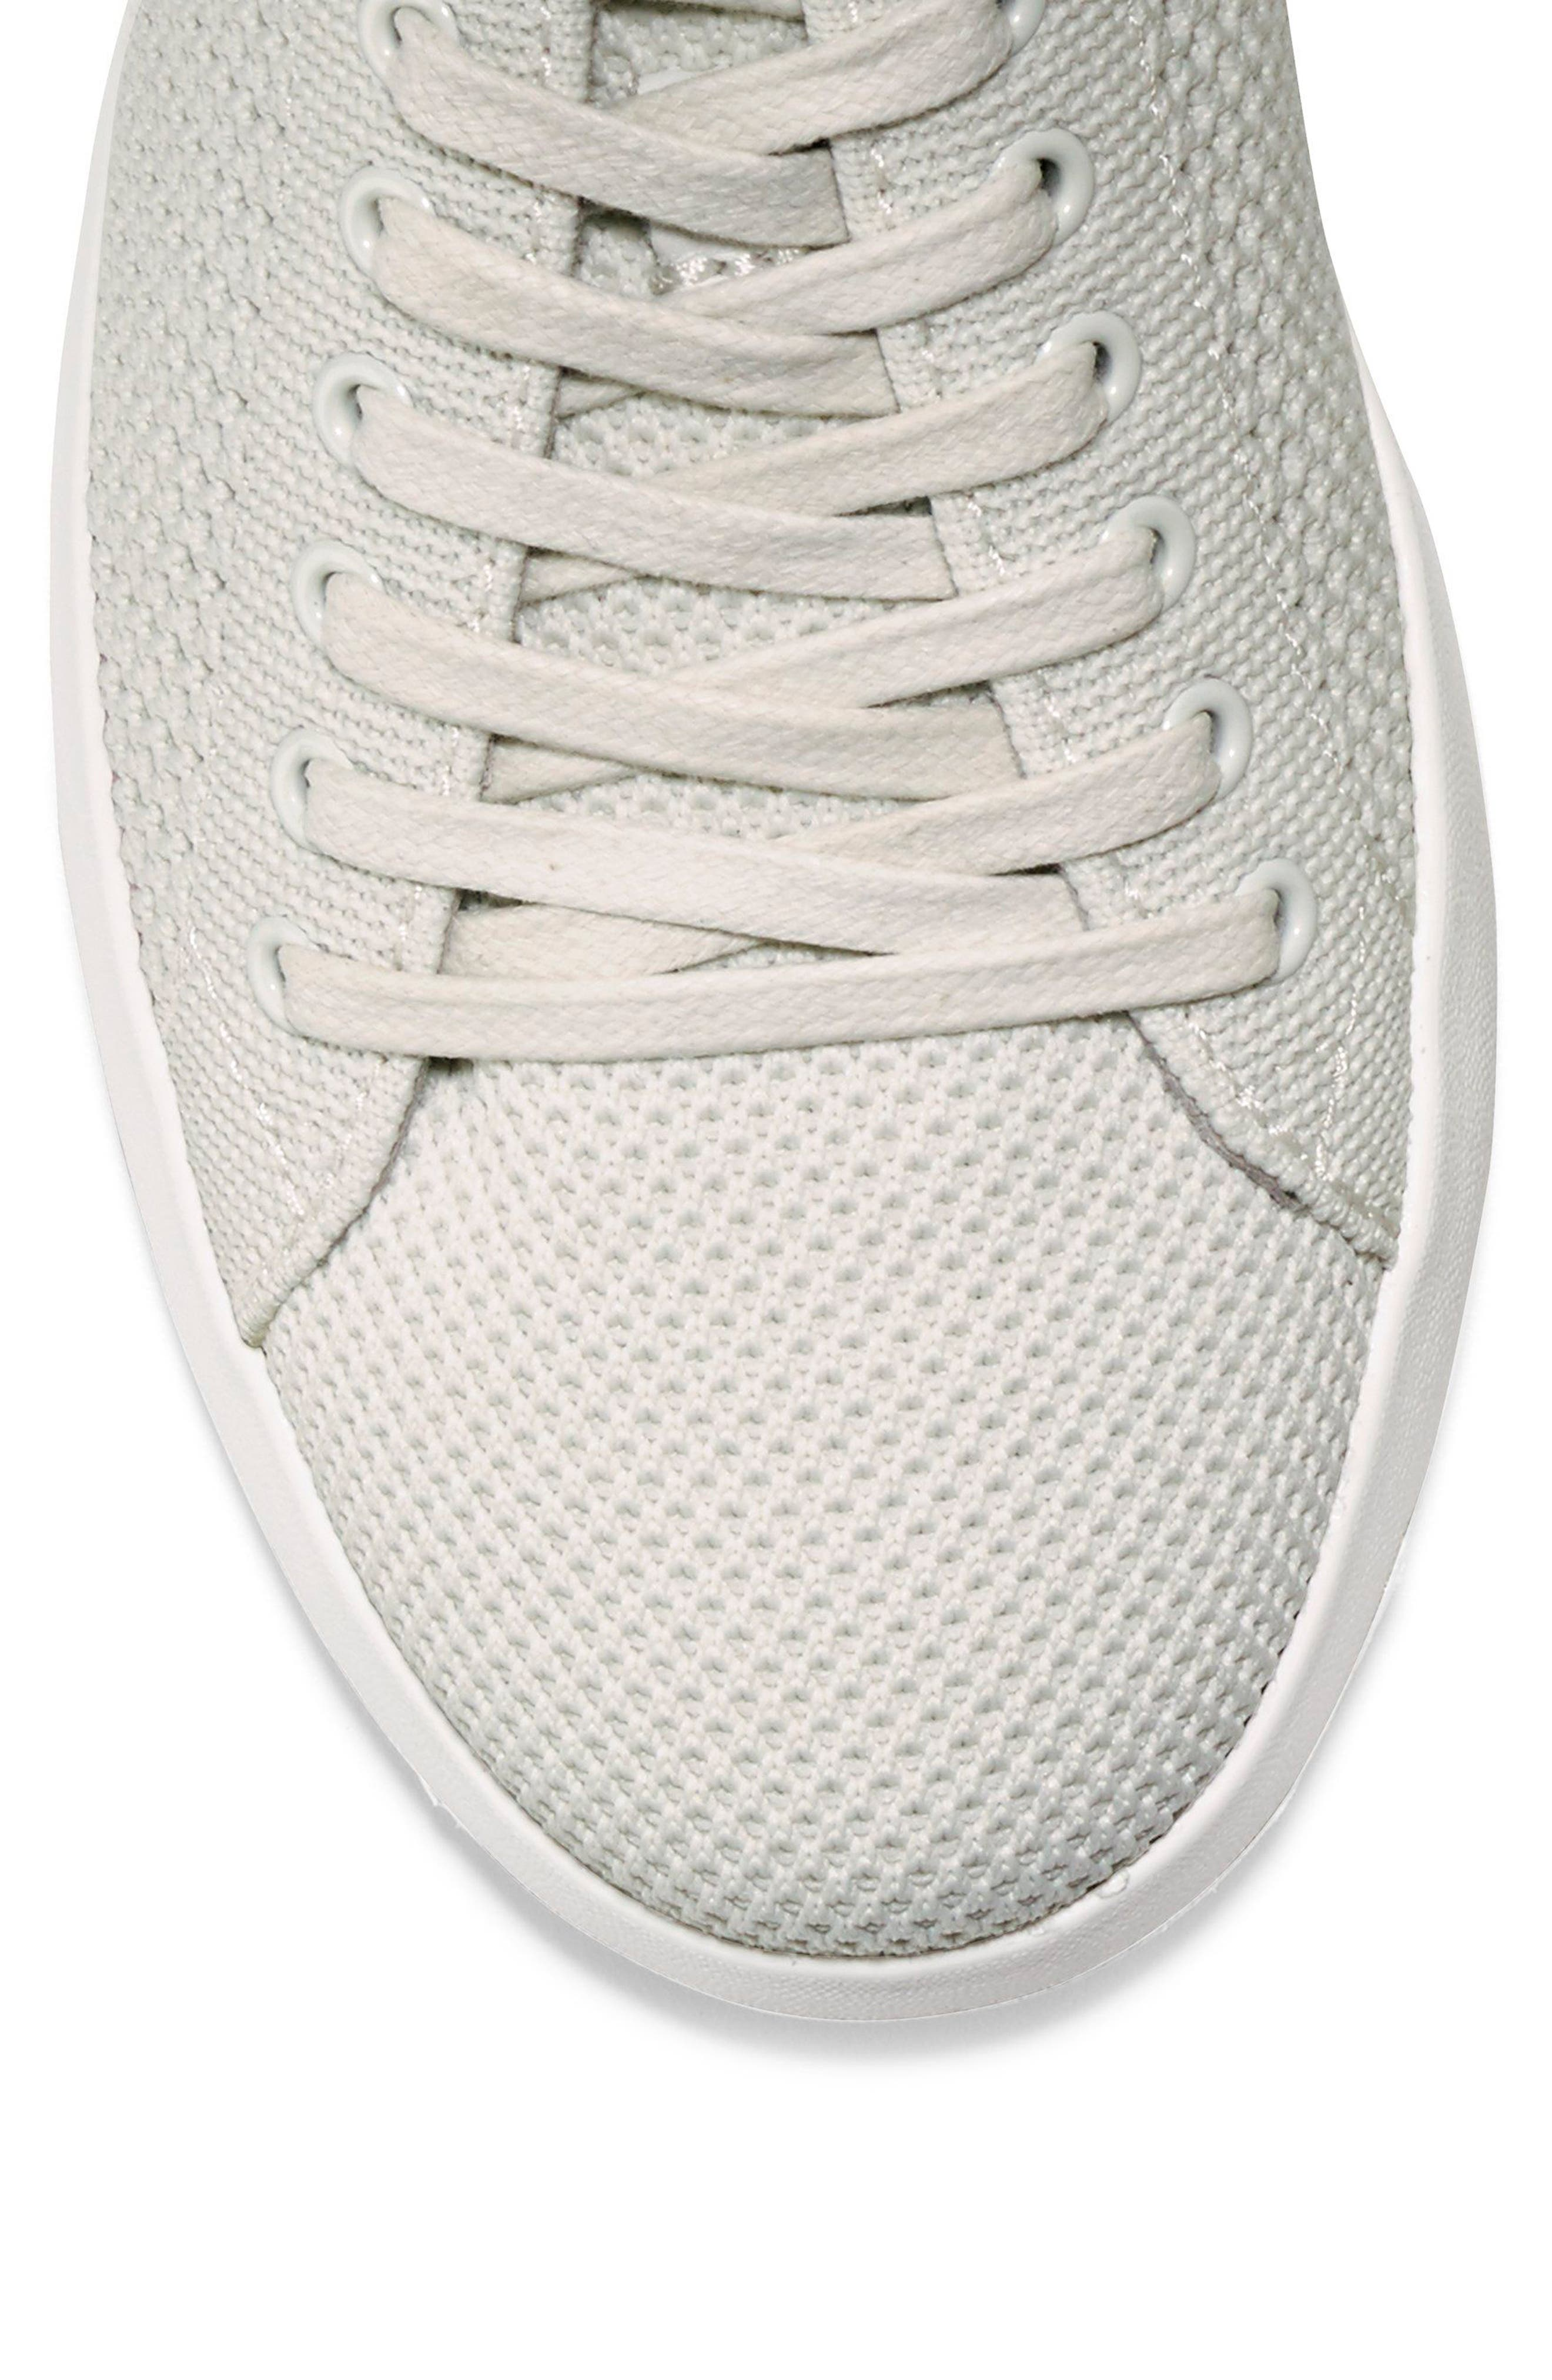 COLE HAAN, GrandPro Stitchlite Sneaker, Alternate thumbnail 7, color, CHALK FABRIC